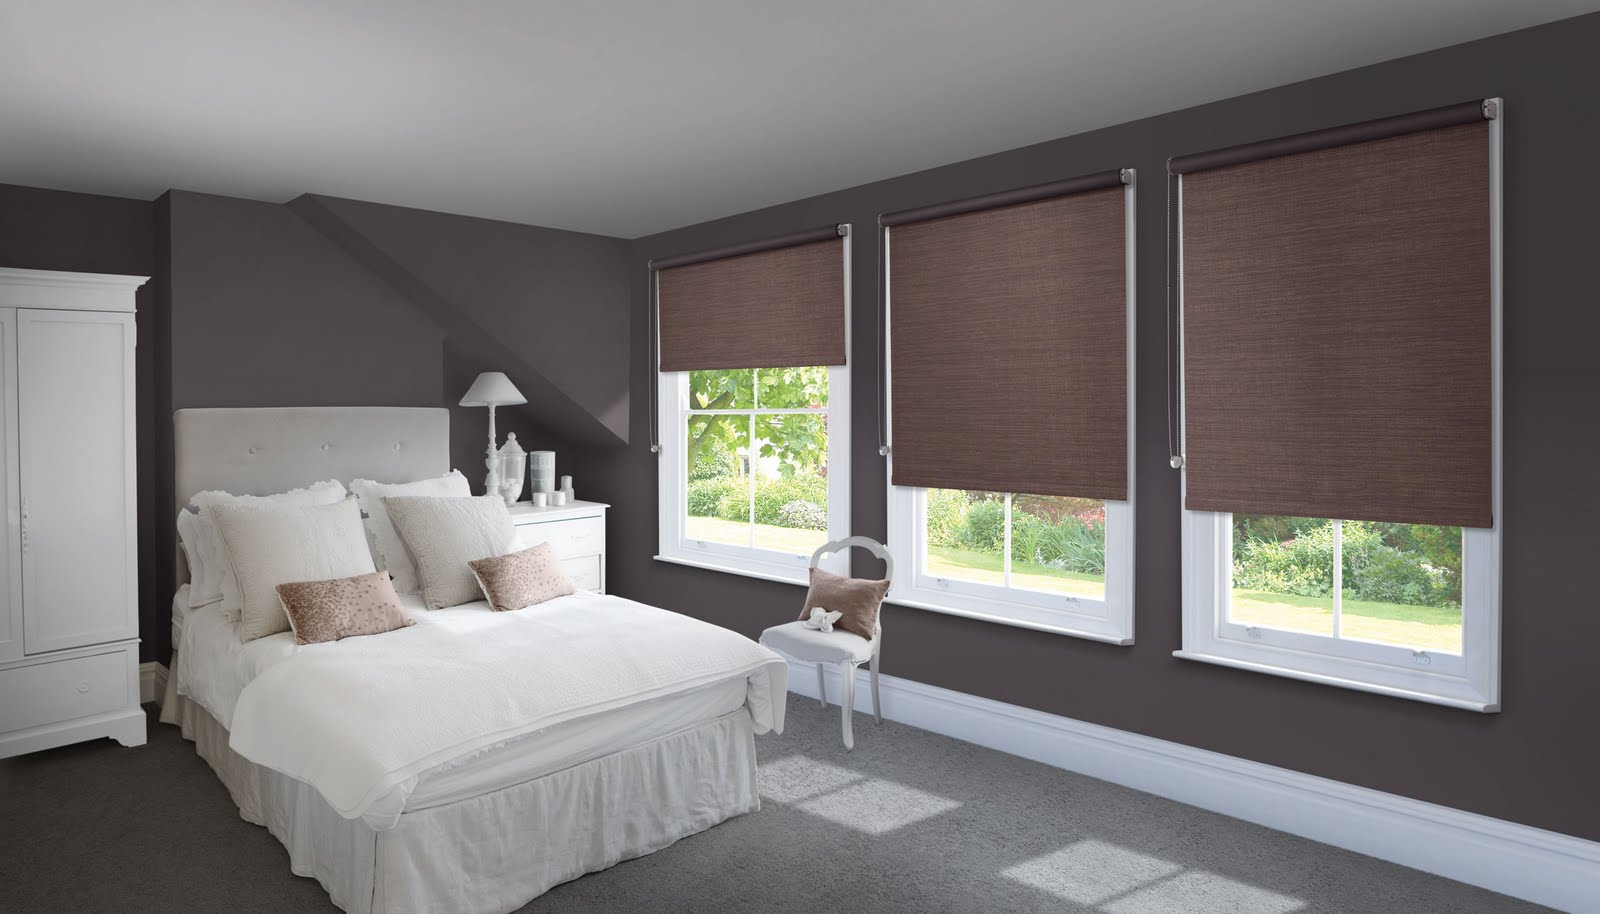 Blinds 4 less modern roller blinds - Estores en el corte ingles ...